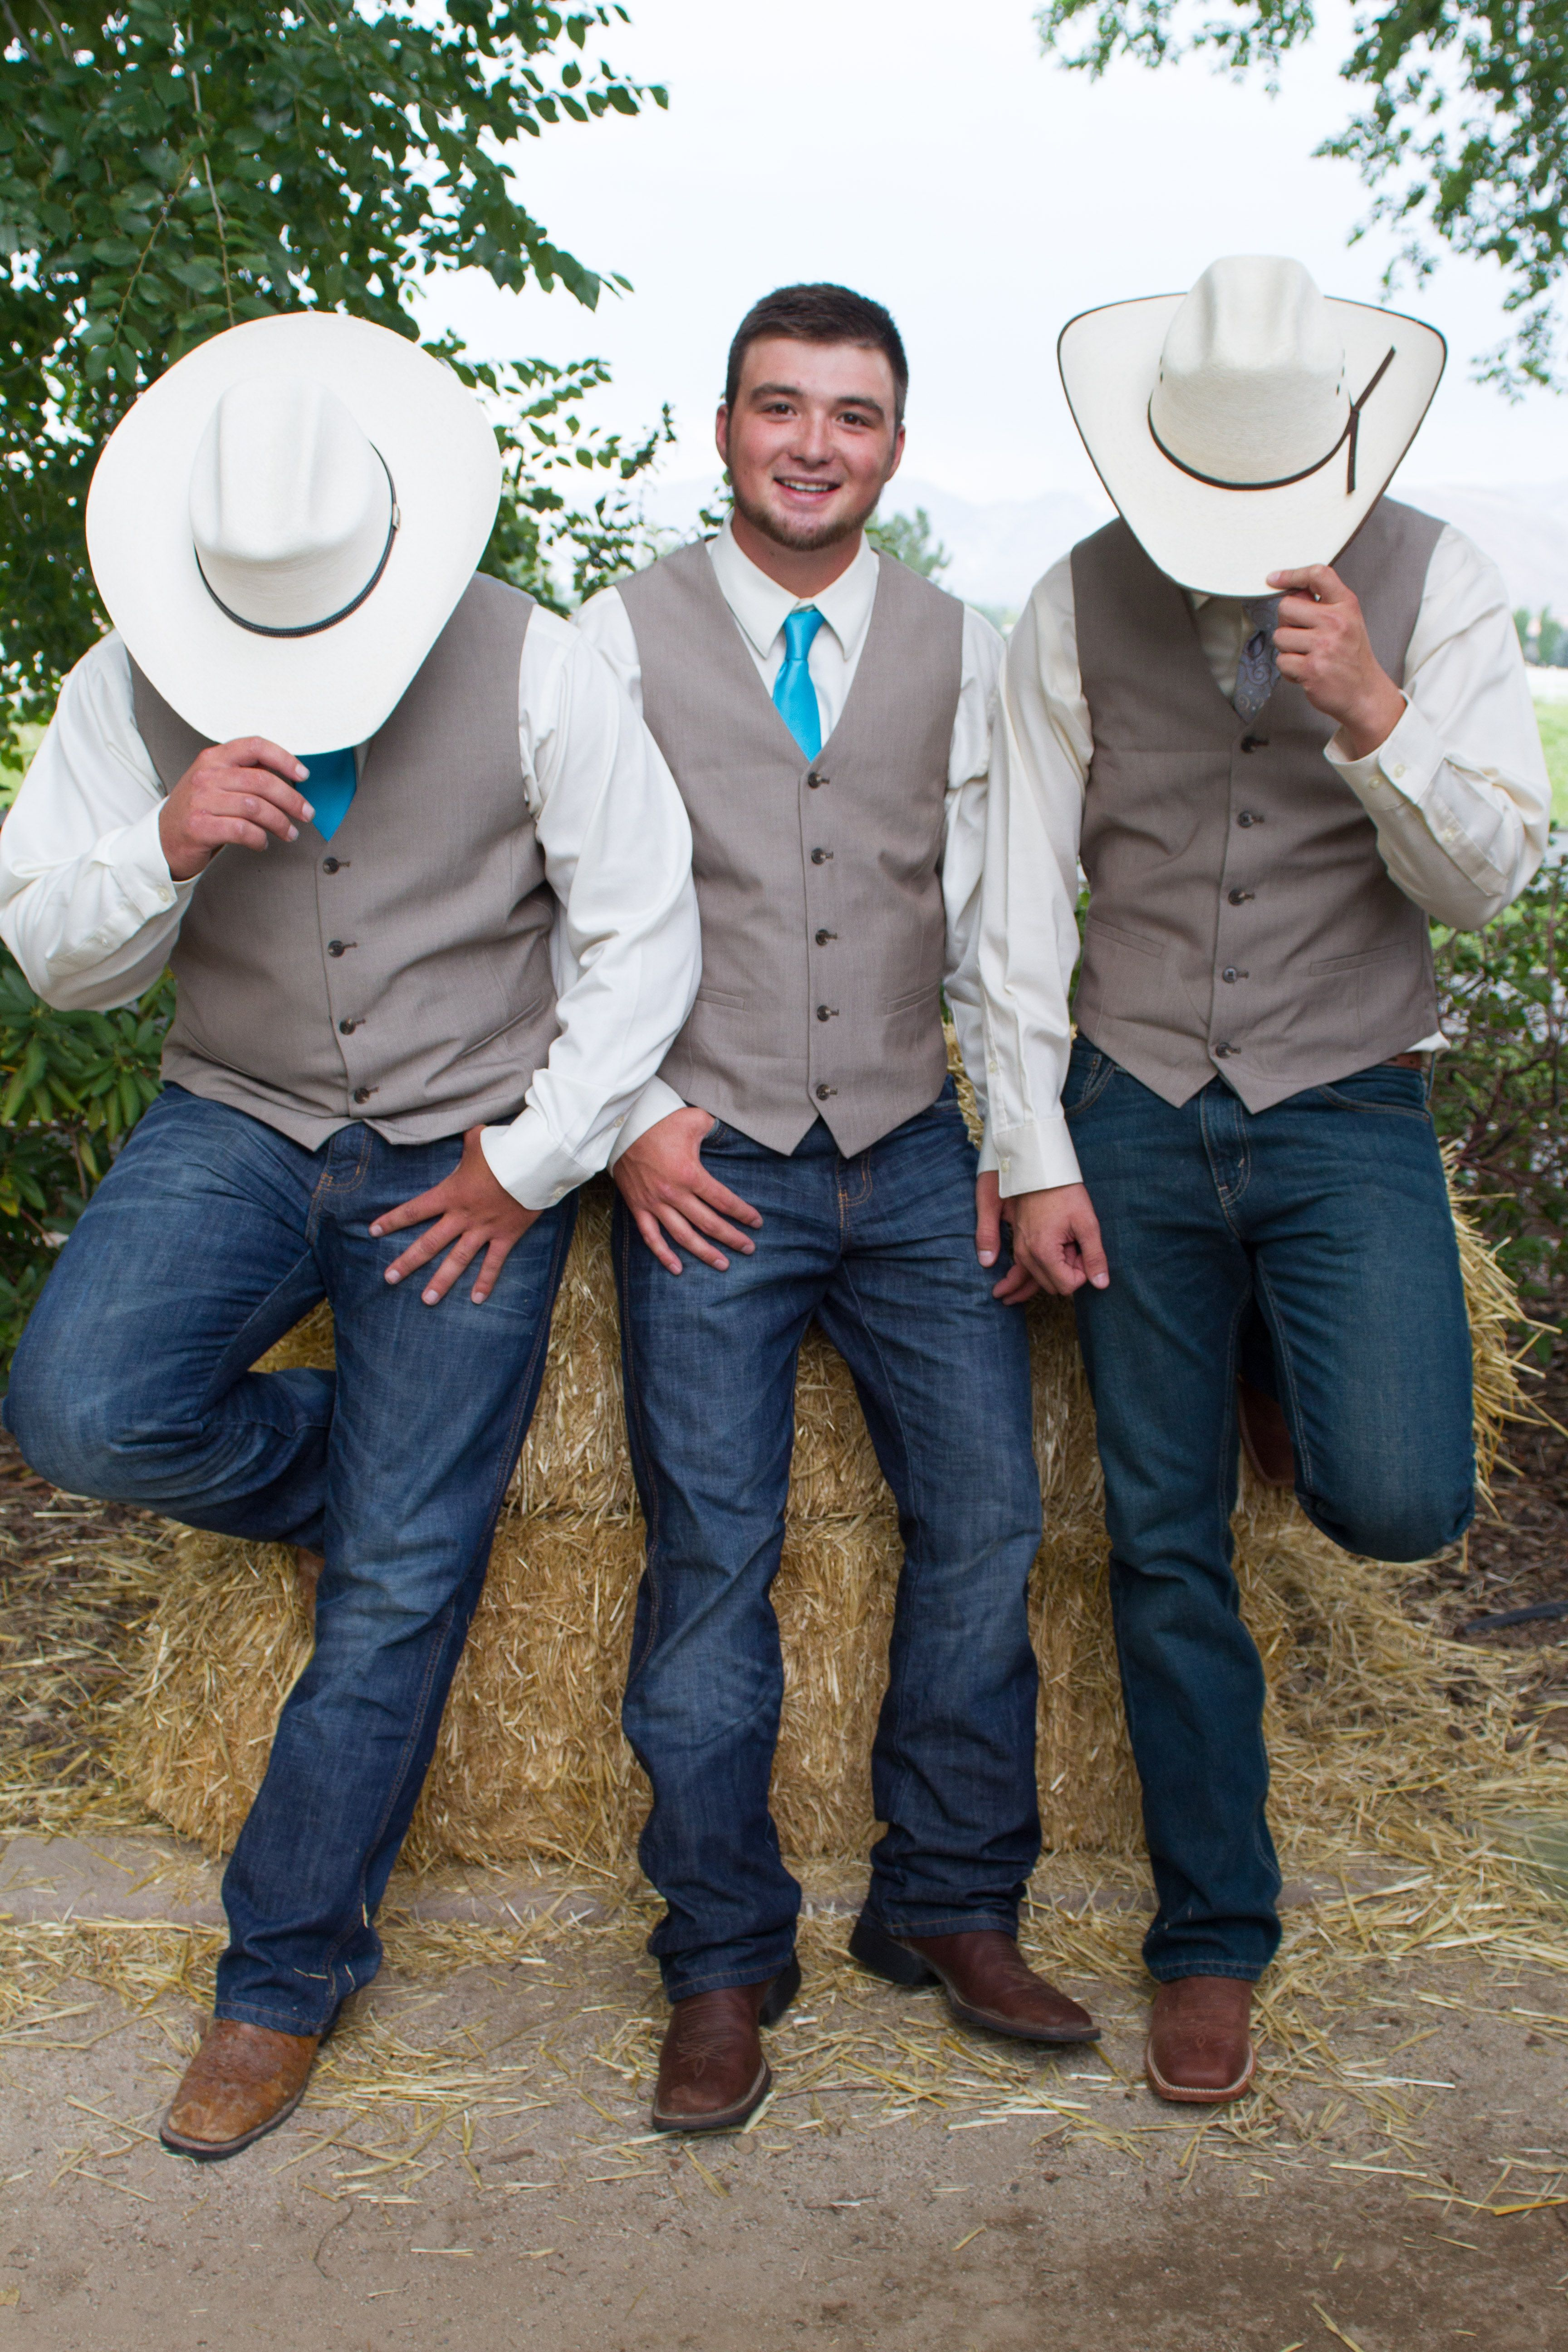 Vests And Cowboy Hats True Country Country Wedding Groomsmen Wedding Groomsmen Attire Country Wedding Attire